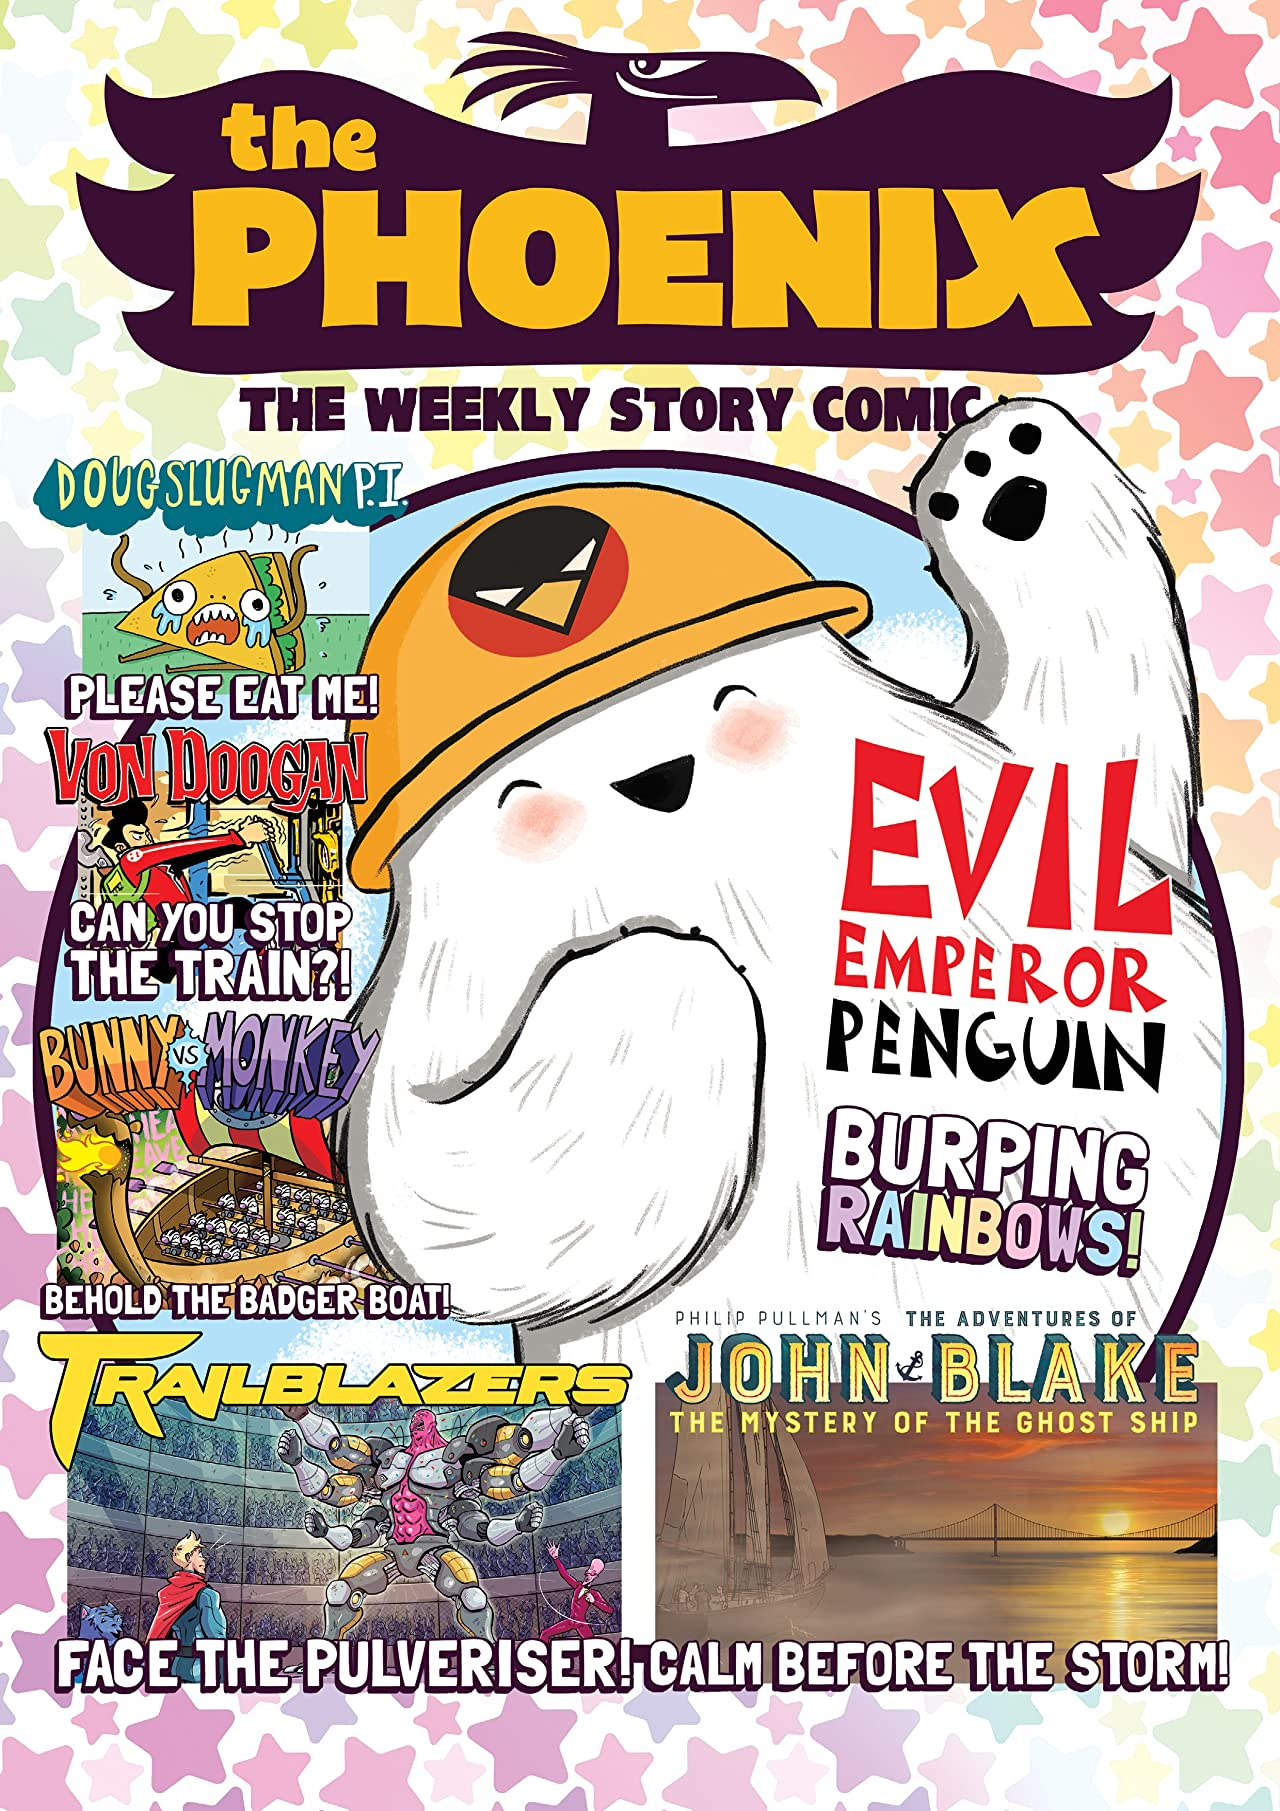 The Phoenix #256: The Weekly Story Comic